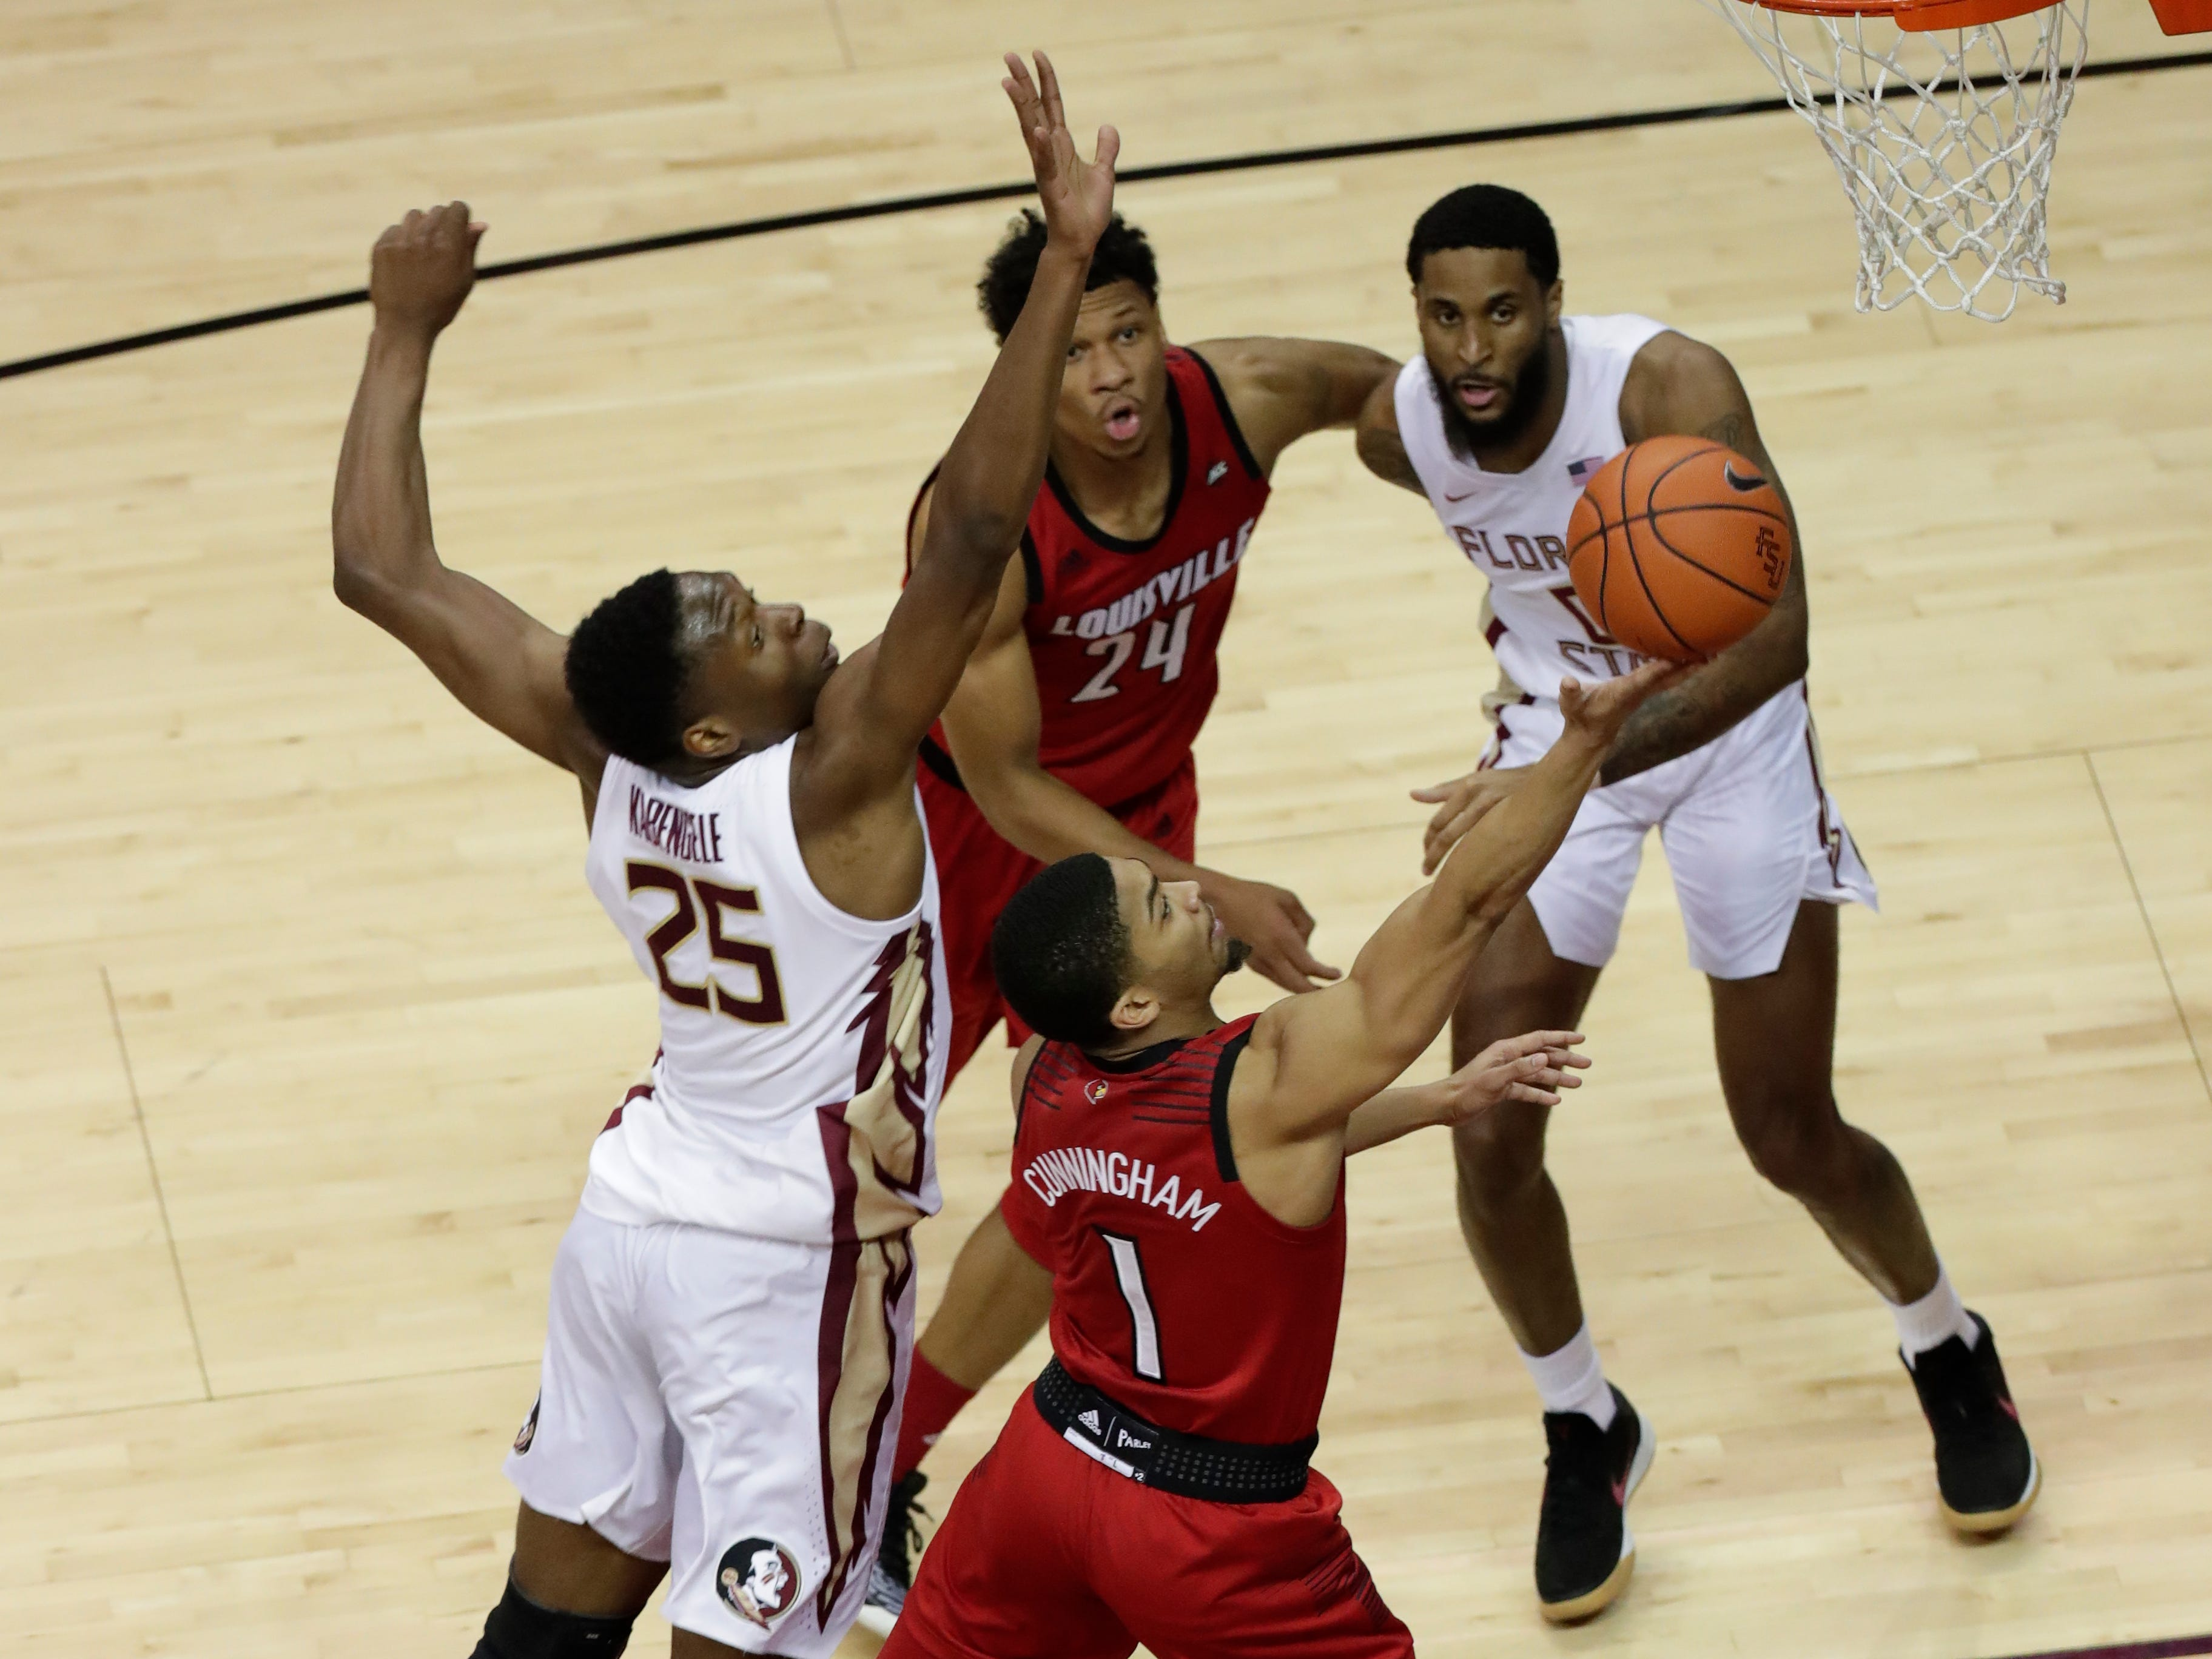 Louisville Cardinals guard Christen Cunningham (1) shoots from inside the paint with Florida State Seminoles forward Mfiondu Kabengele (25) coming from behind trying to block the shot. The Florida State Seminoles host the Louisville Cardinals at the Tucker Civic Center, Saturday Feb. 9, 2019.